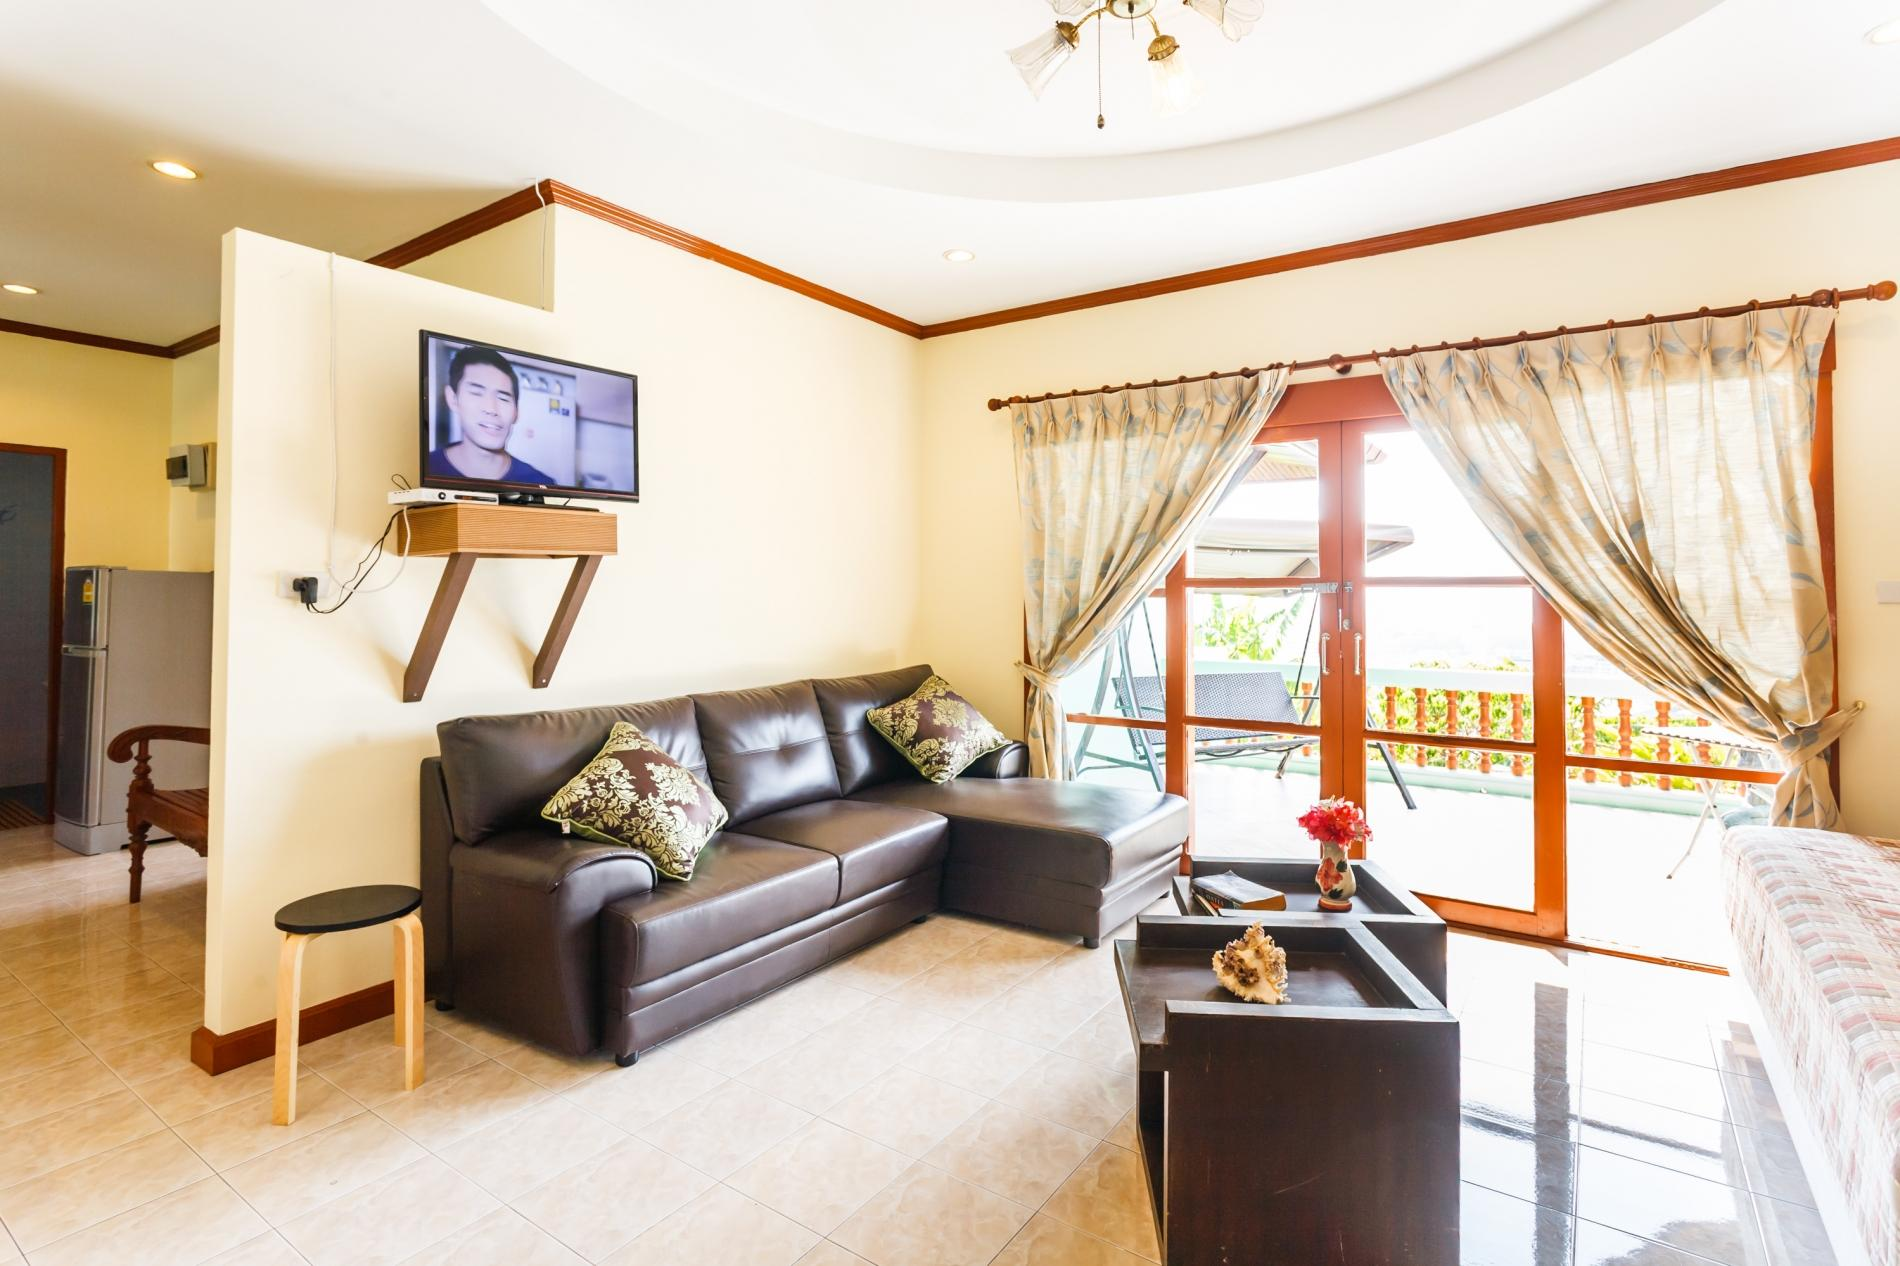 Apartment Vista Villa 2 - Sea view Patong house for 4 guests in quiet neighbourhood photo 18986808